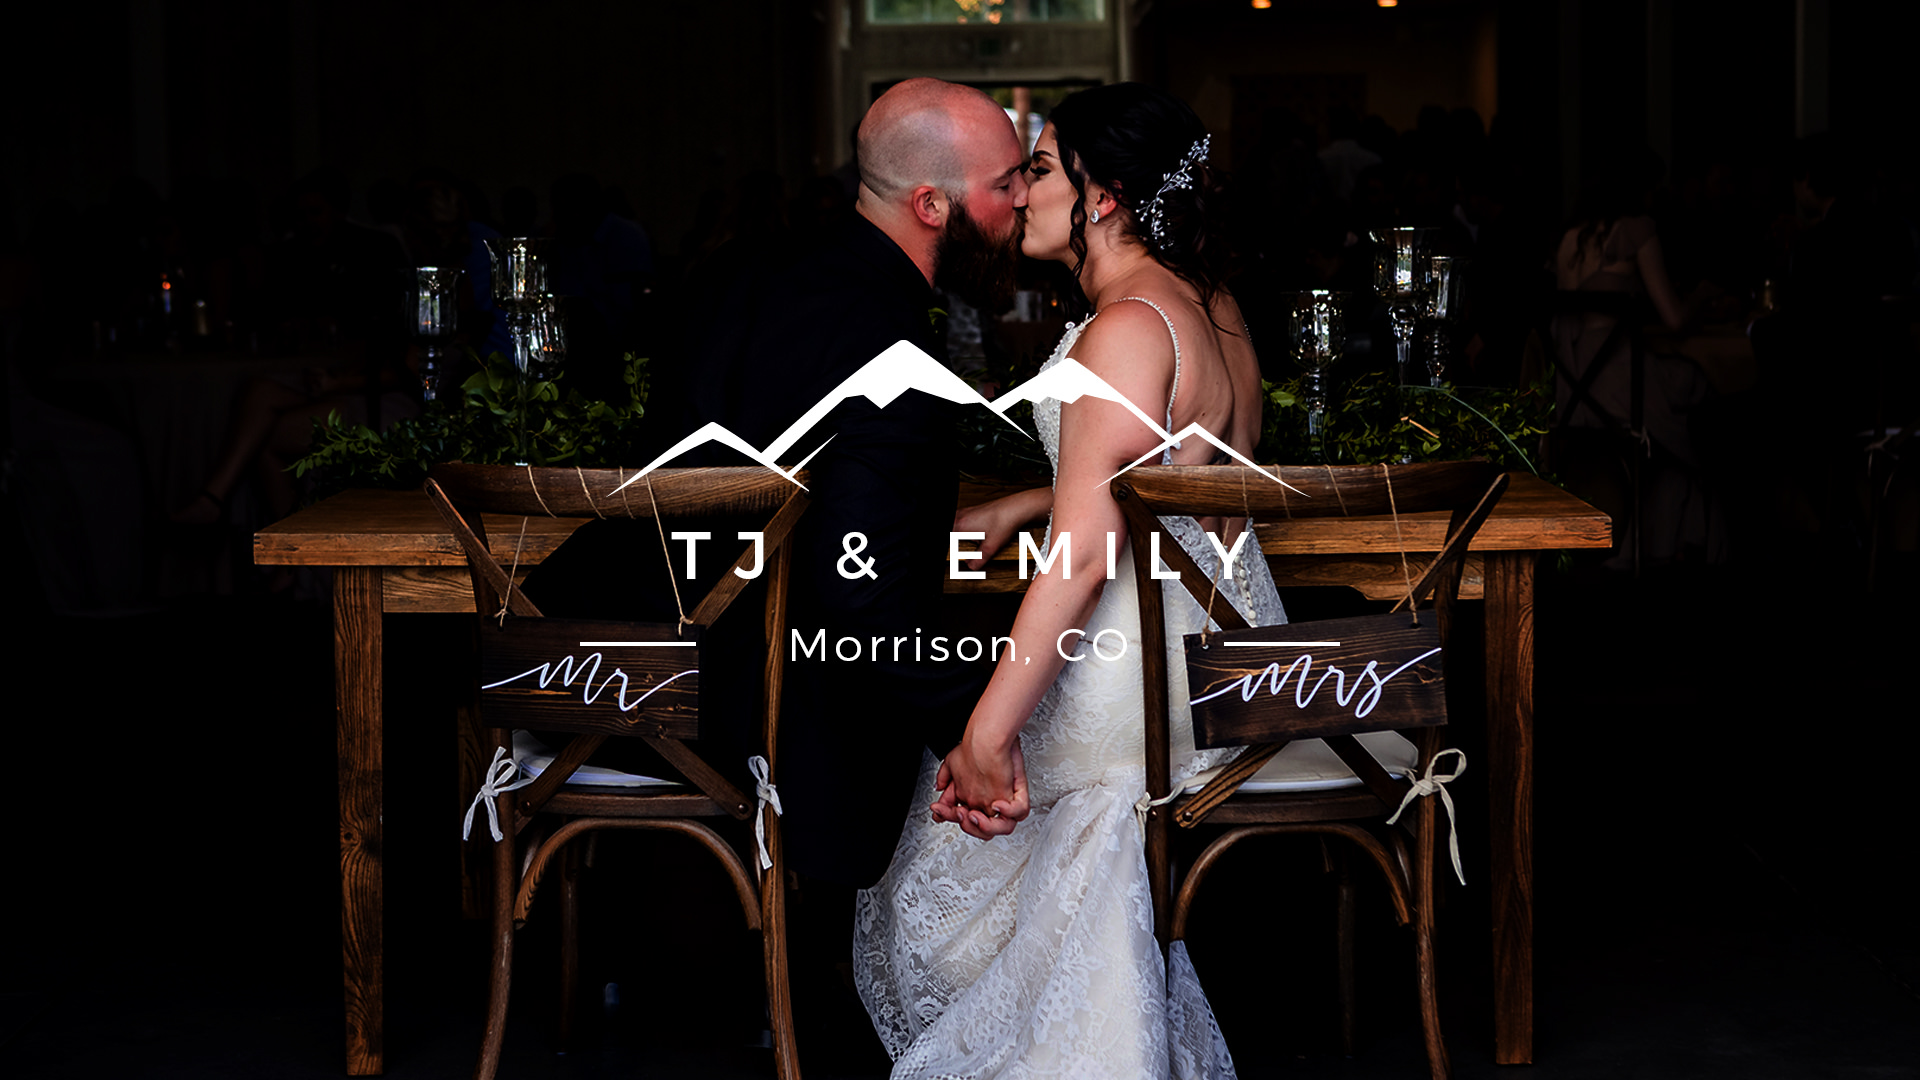 Emily + TJ | Morrison, Colorado | The Woodlands Venue